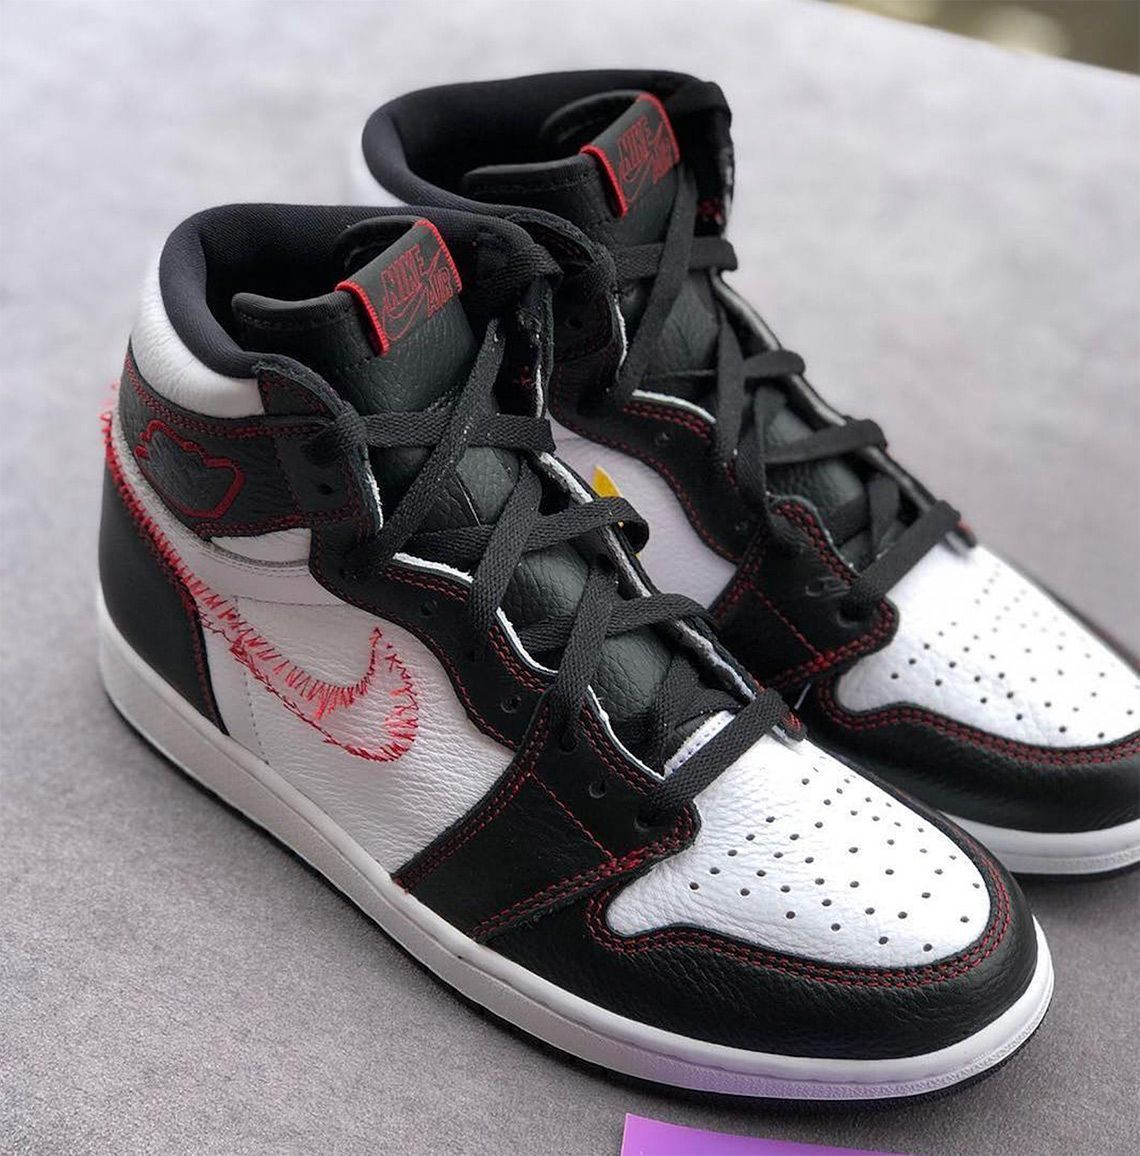 ab0c393df09e Lateral swooshes are subtracted from the equation on the upcoming Air  Jordan 1